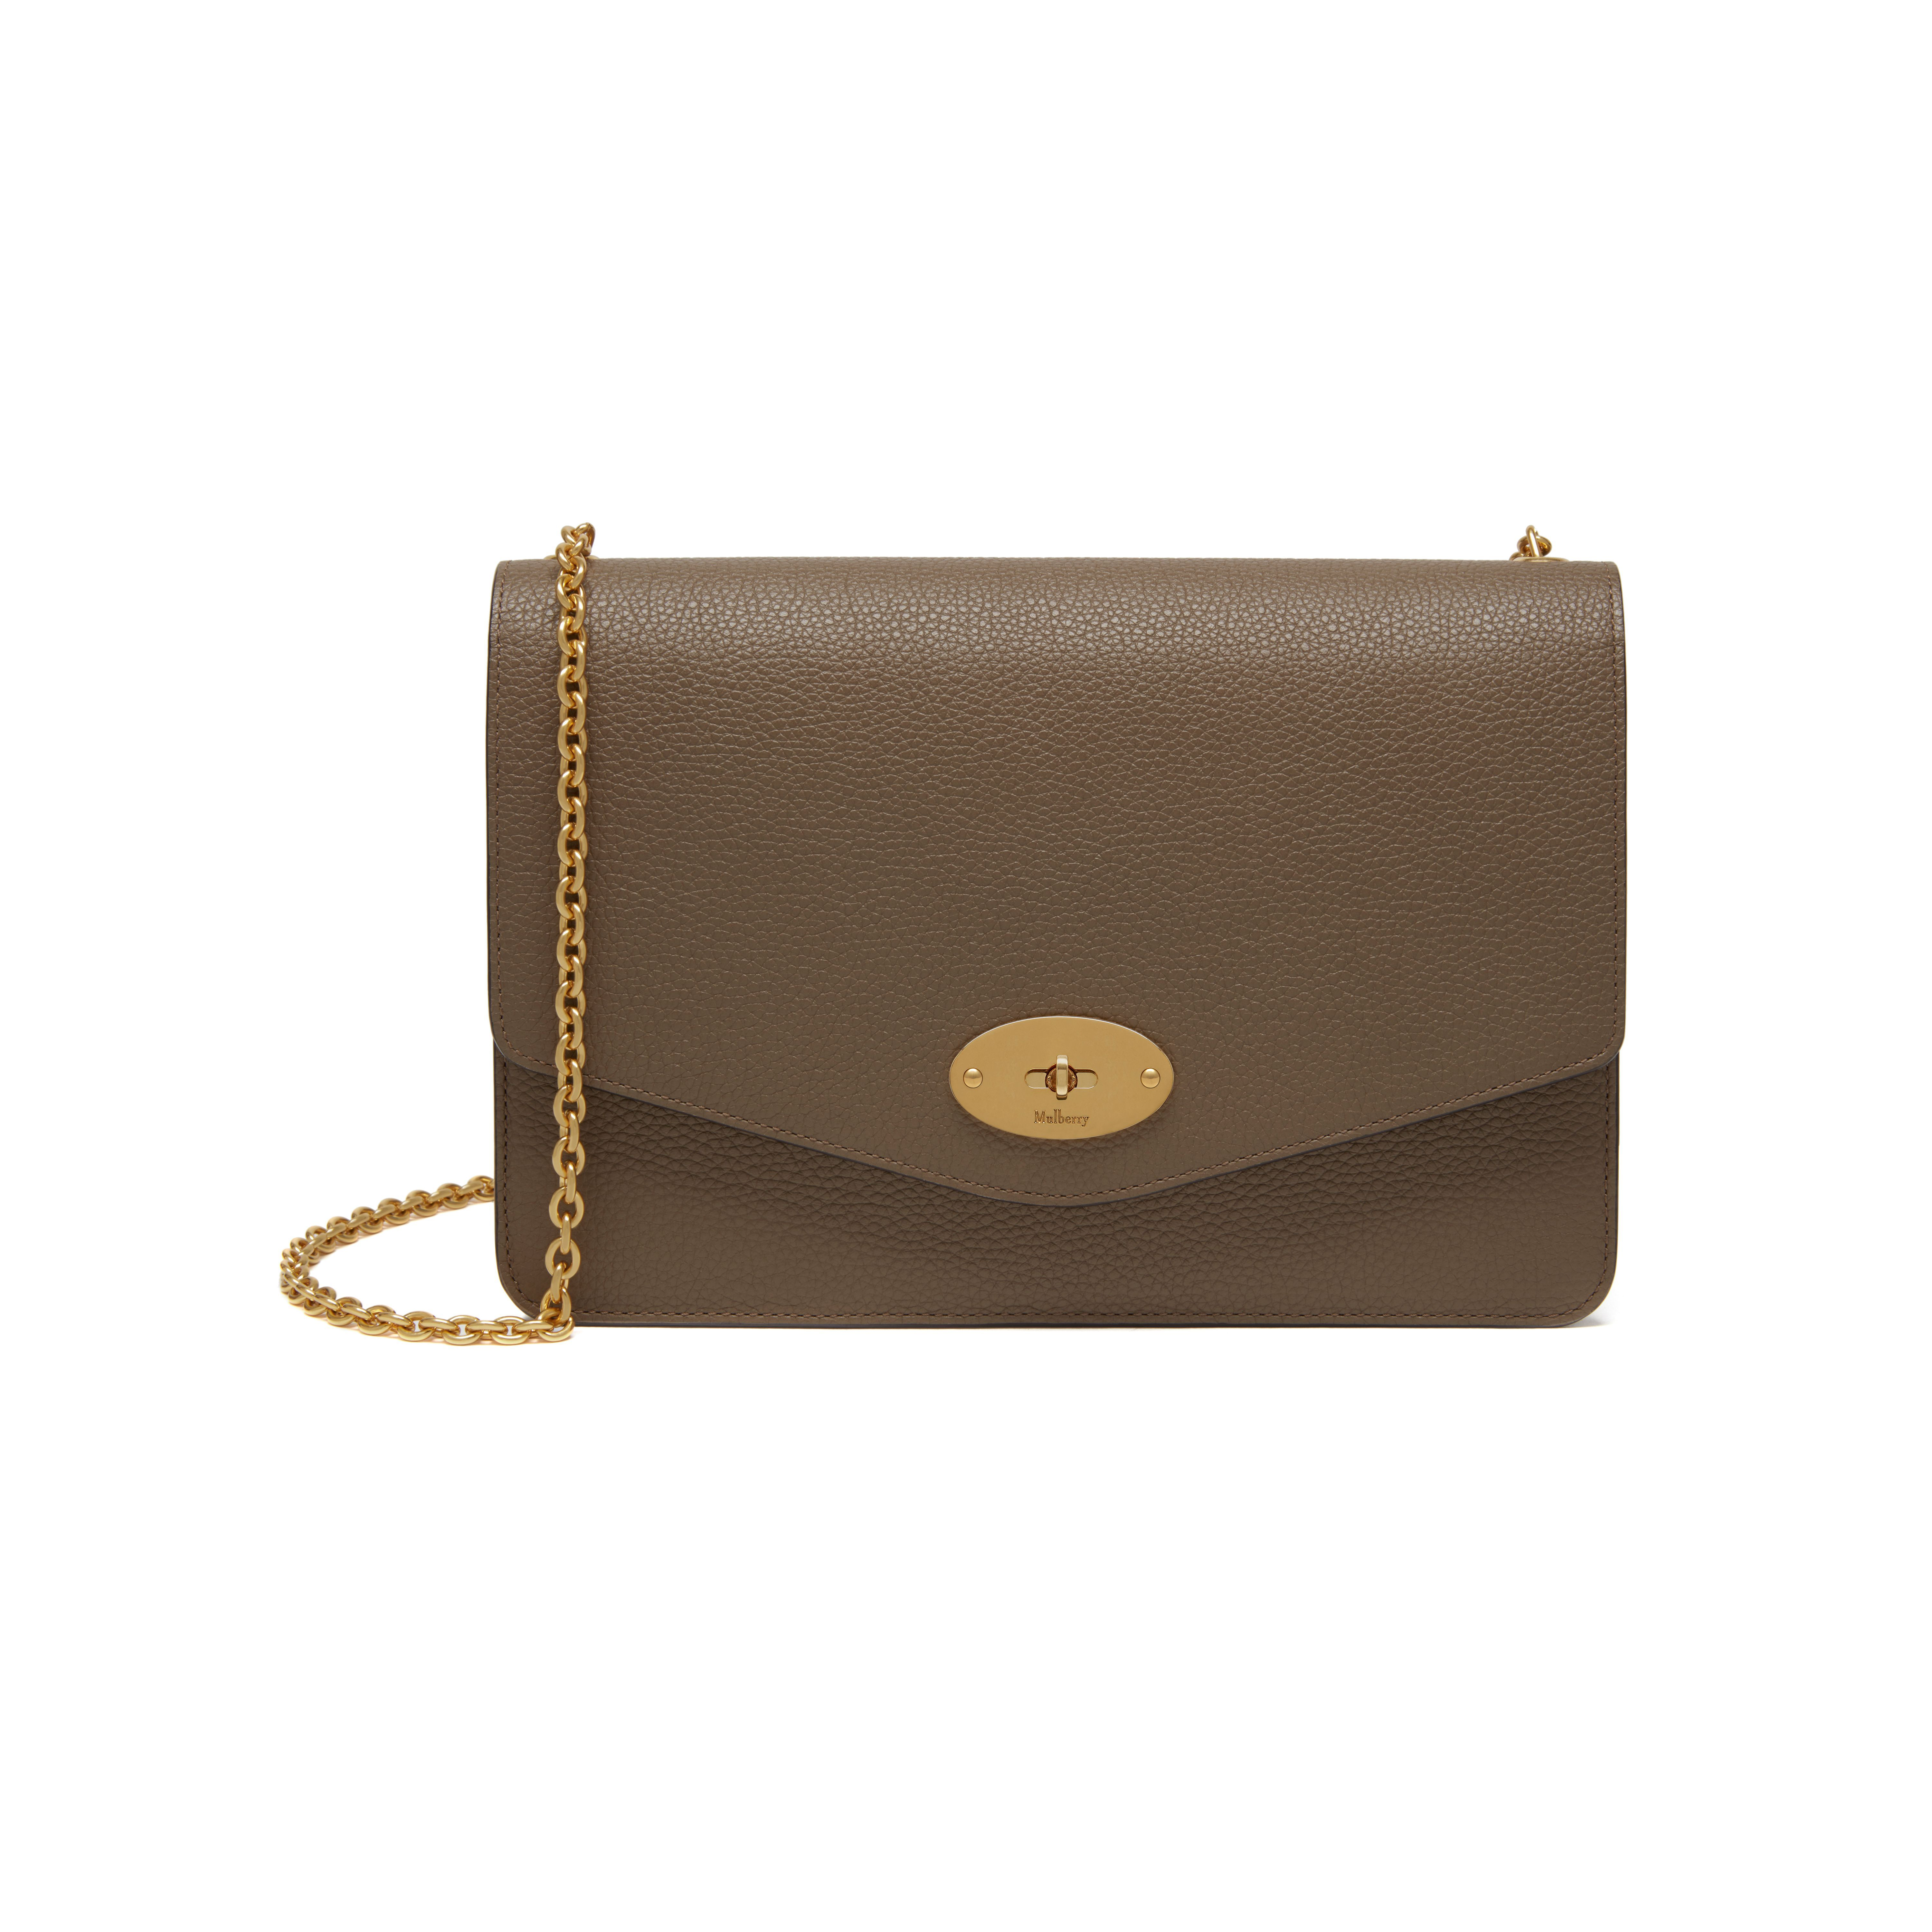 465c7e4ca7aa Shop the Darley in Clay Small Classic Grain Leather at Mulberry.com. A  classic clutch